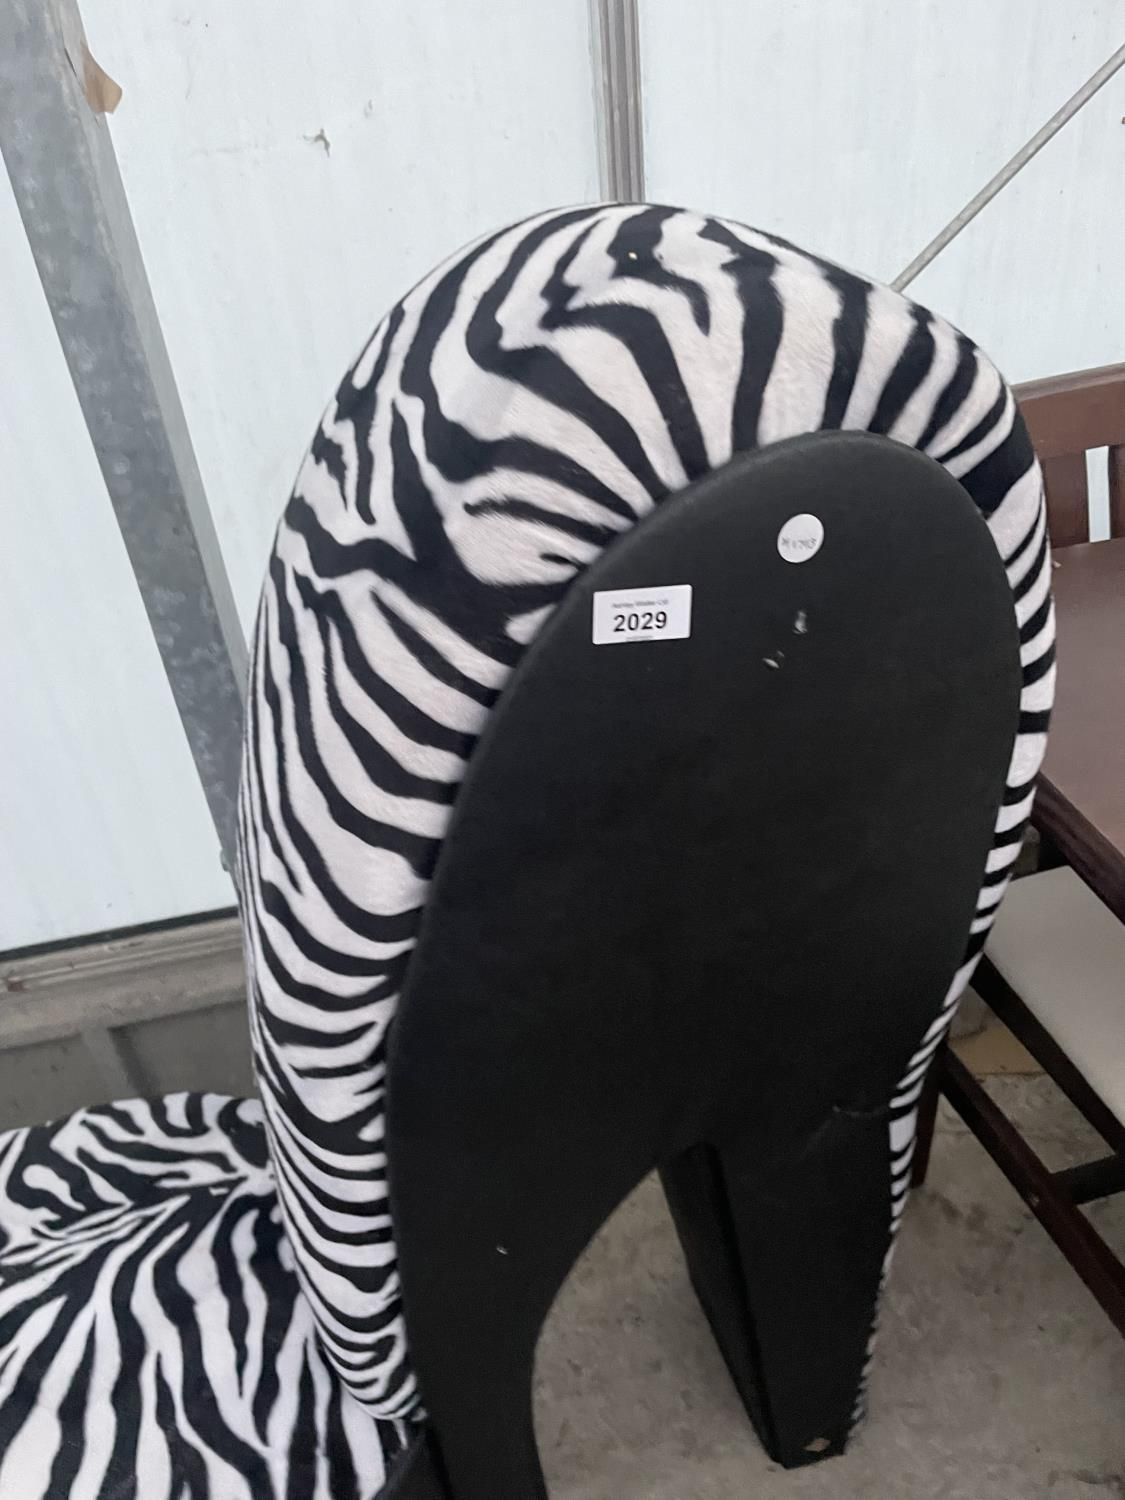 A FEATURE CHAIR IN THE FORM OF A HIGH HEEL SHOE WITH ZEBRA SKIN DESIGN FINISH - Image 2 of 4